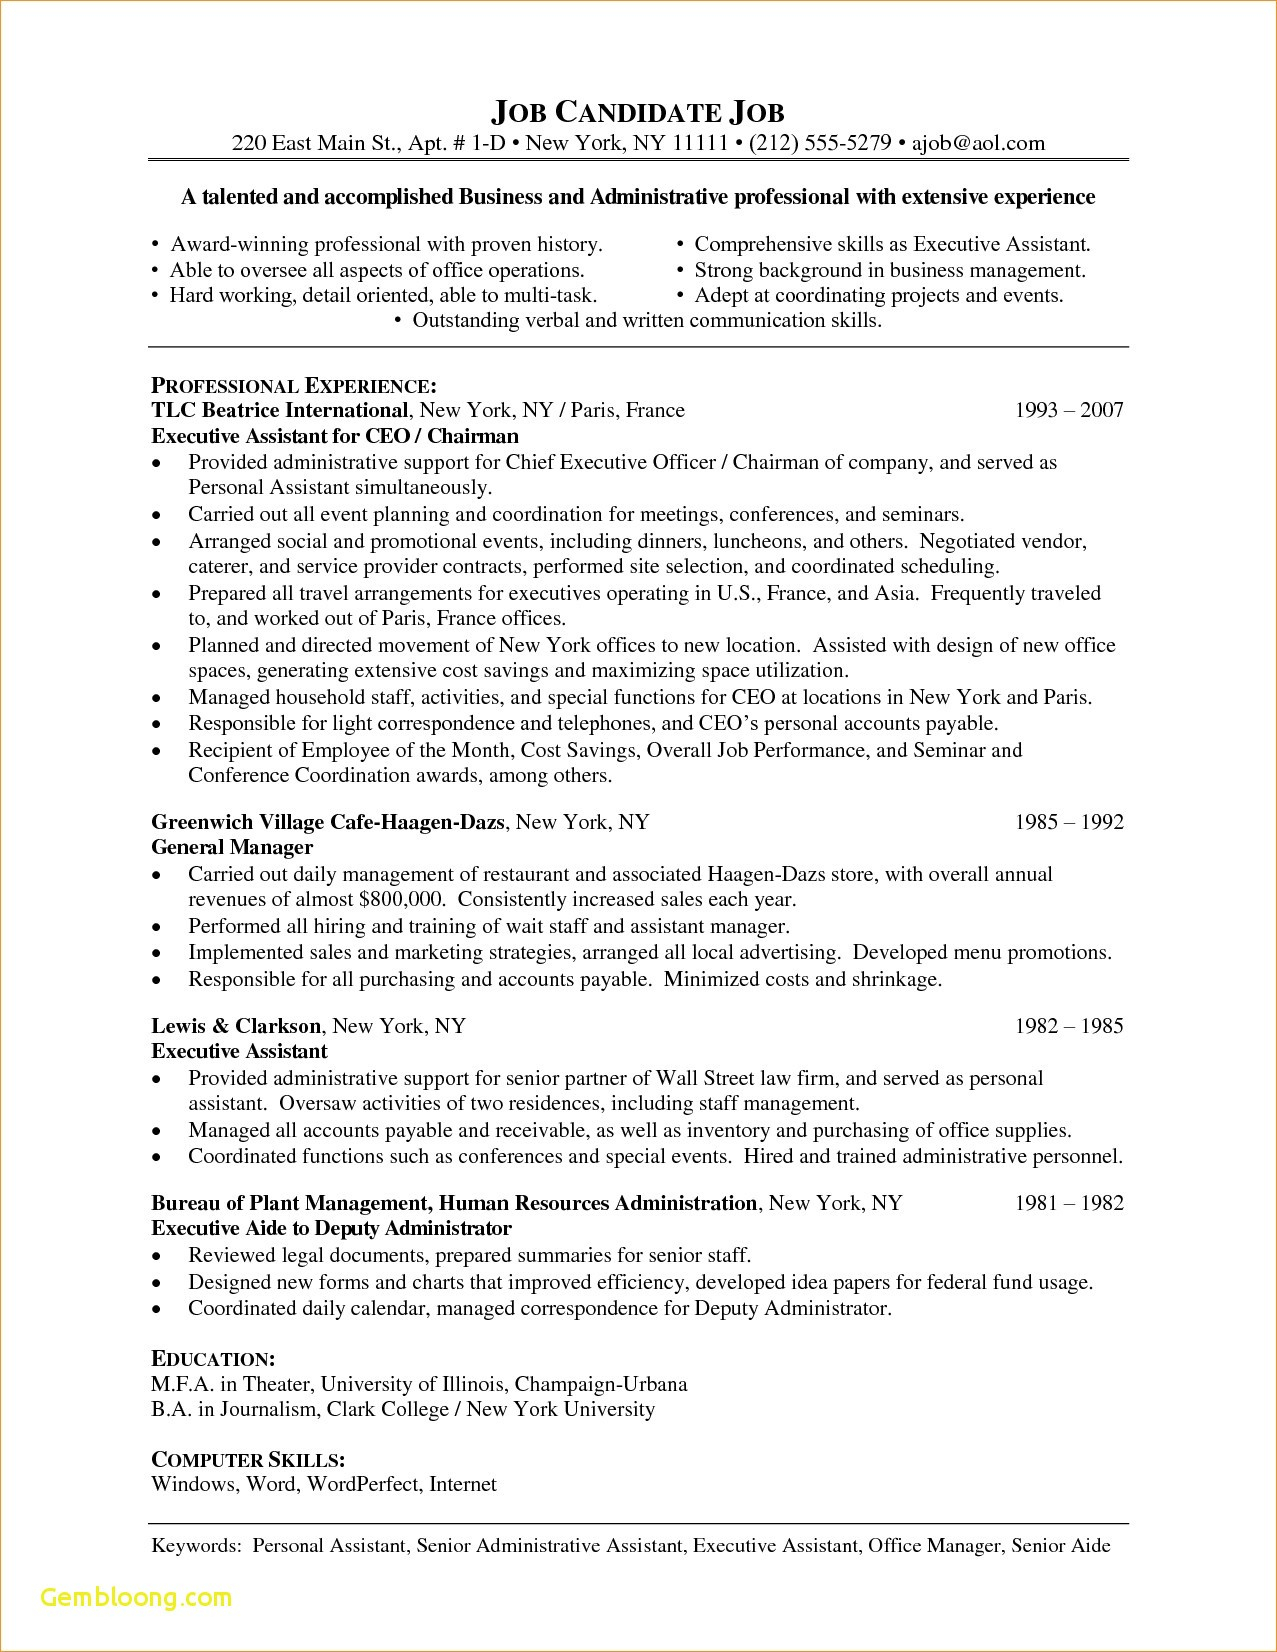 Uiuc Resume Template - Cover Letter and Resume Template Word Download